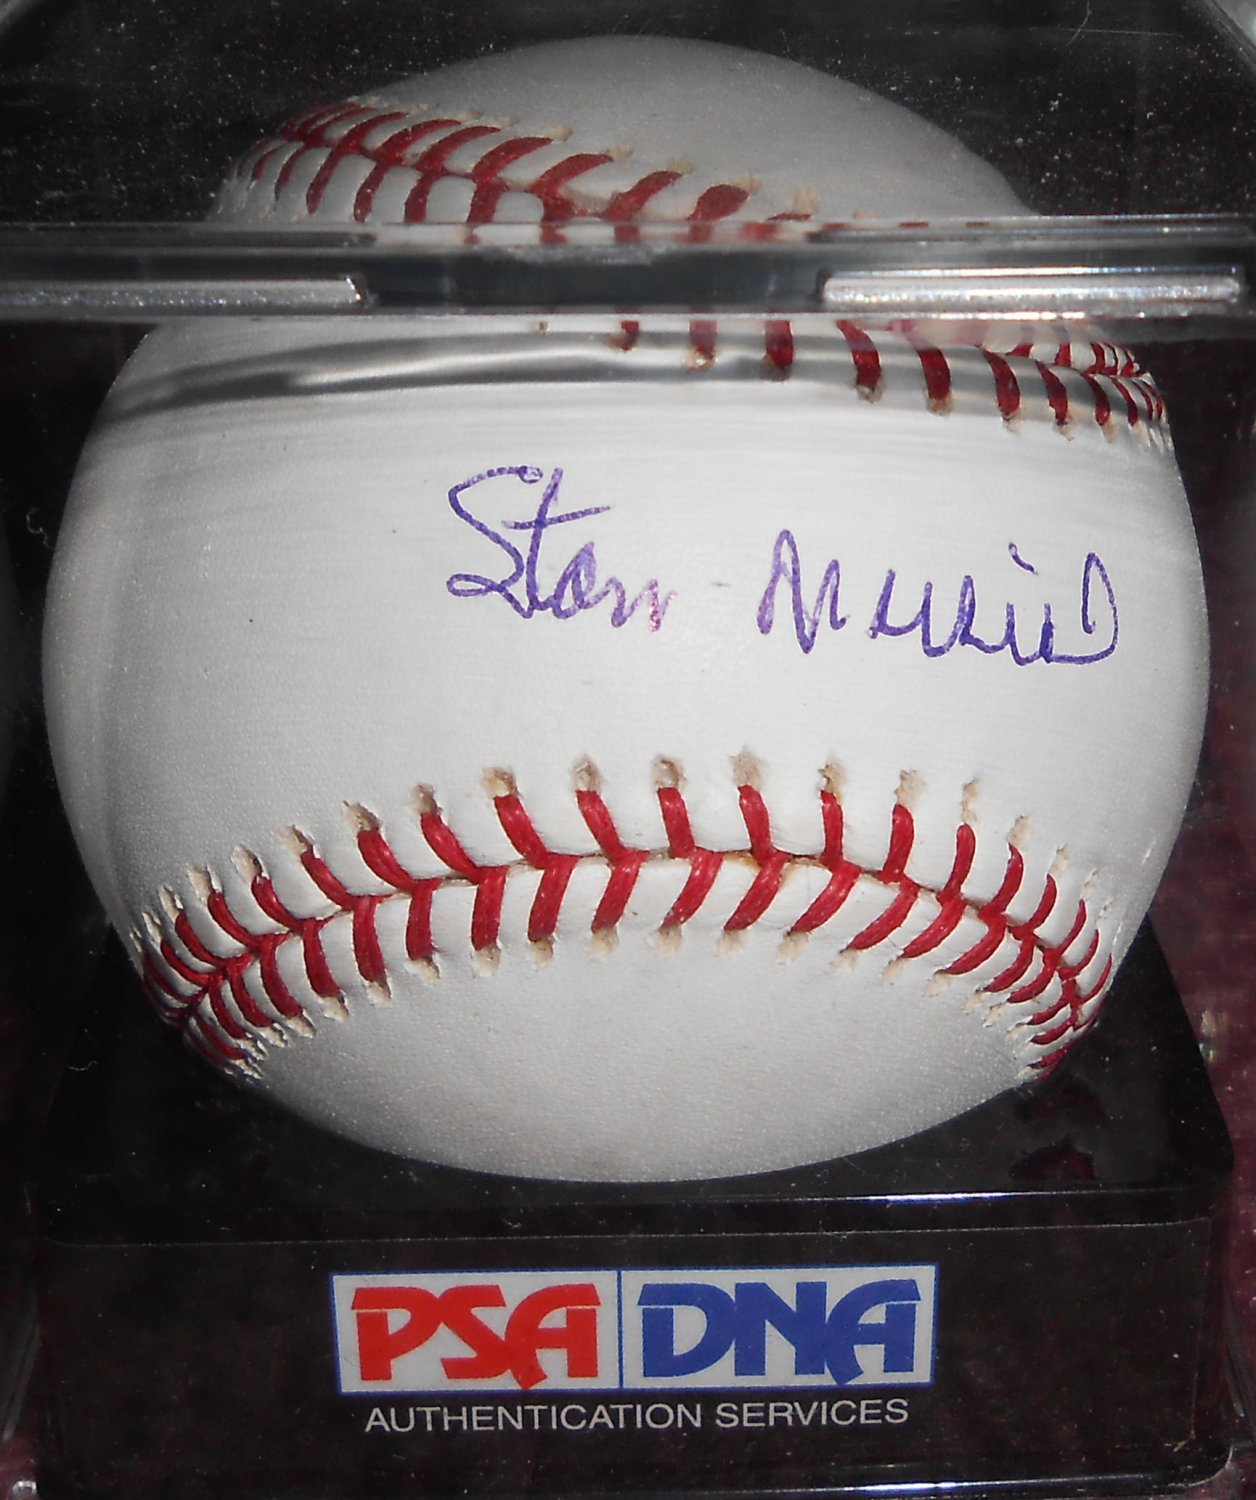 Stan Musial Signed Official Major League Baseball (PSA/DNA) Graded 9